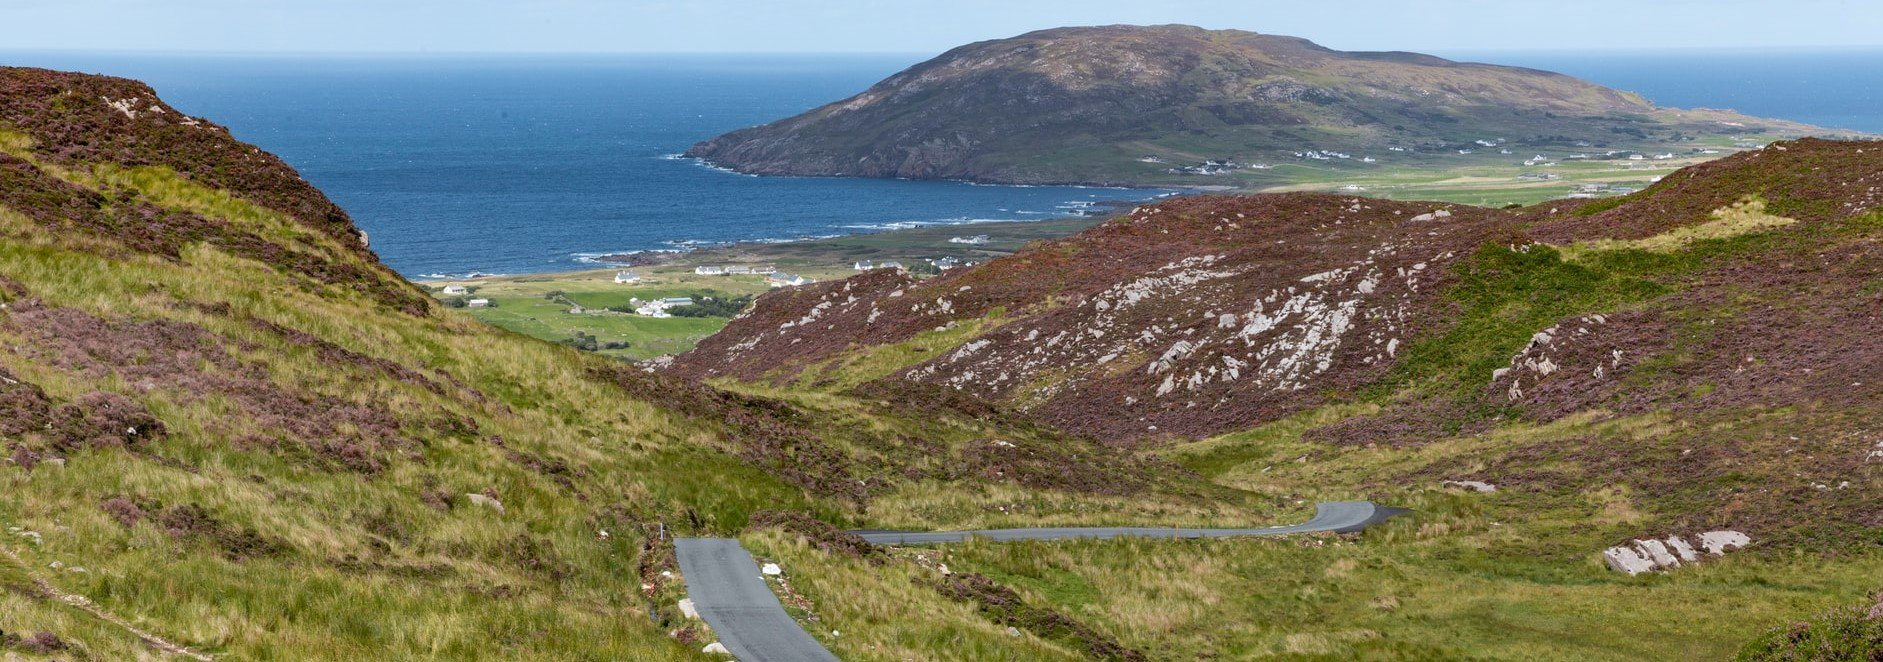 wild atlantic way 7 day itinerary